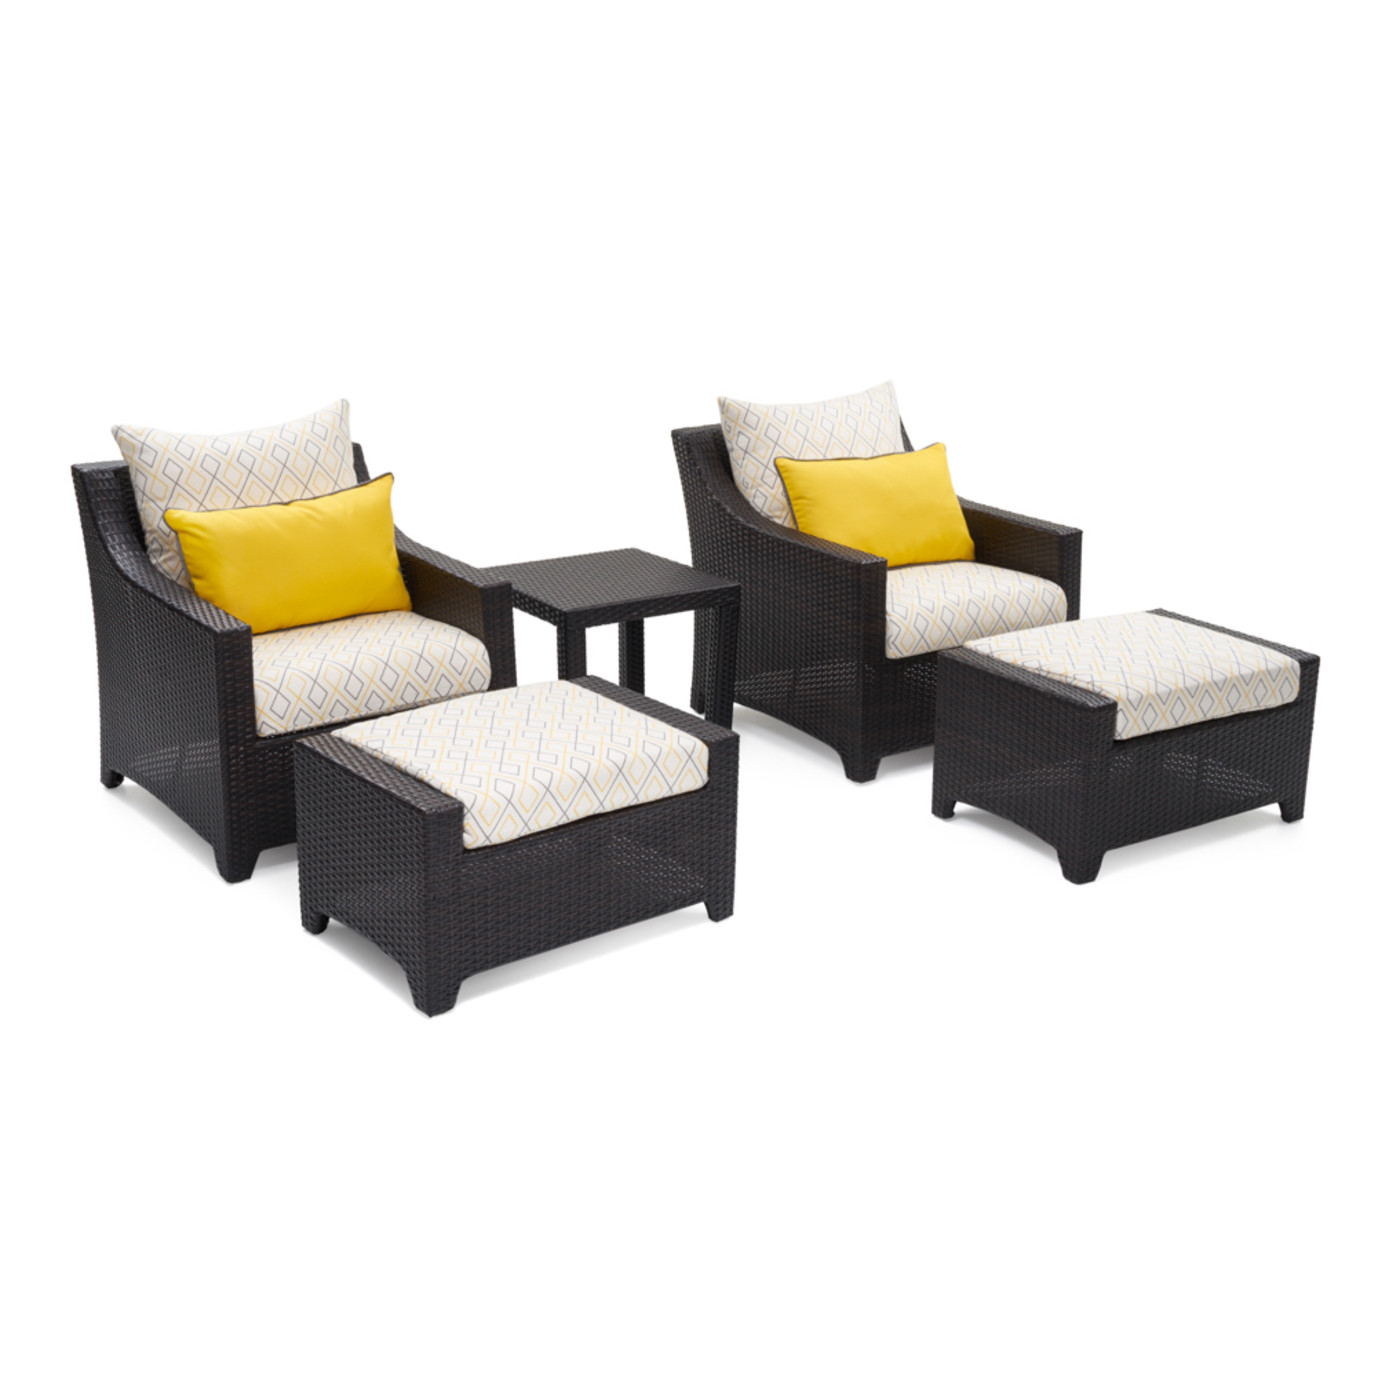 Deco™ 5pc Club Chair & Ottoman Set - Sunflower Yellow Design